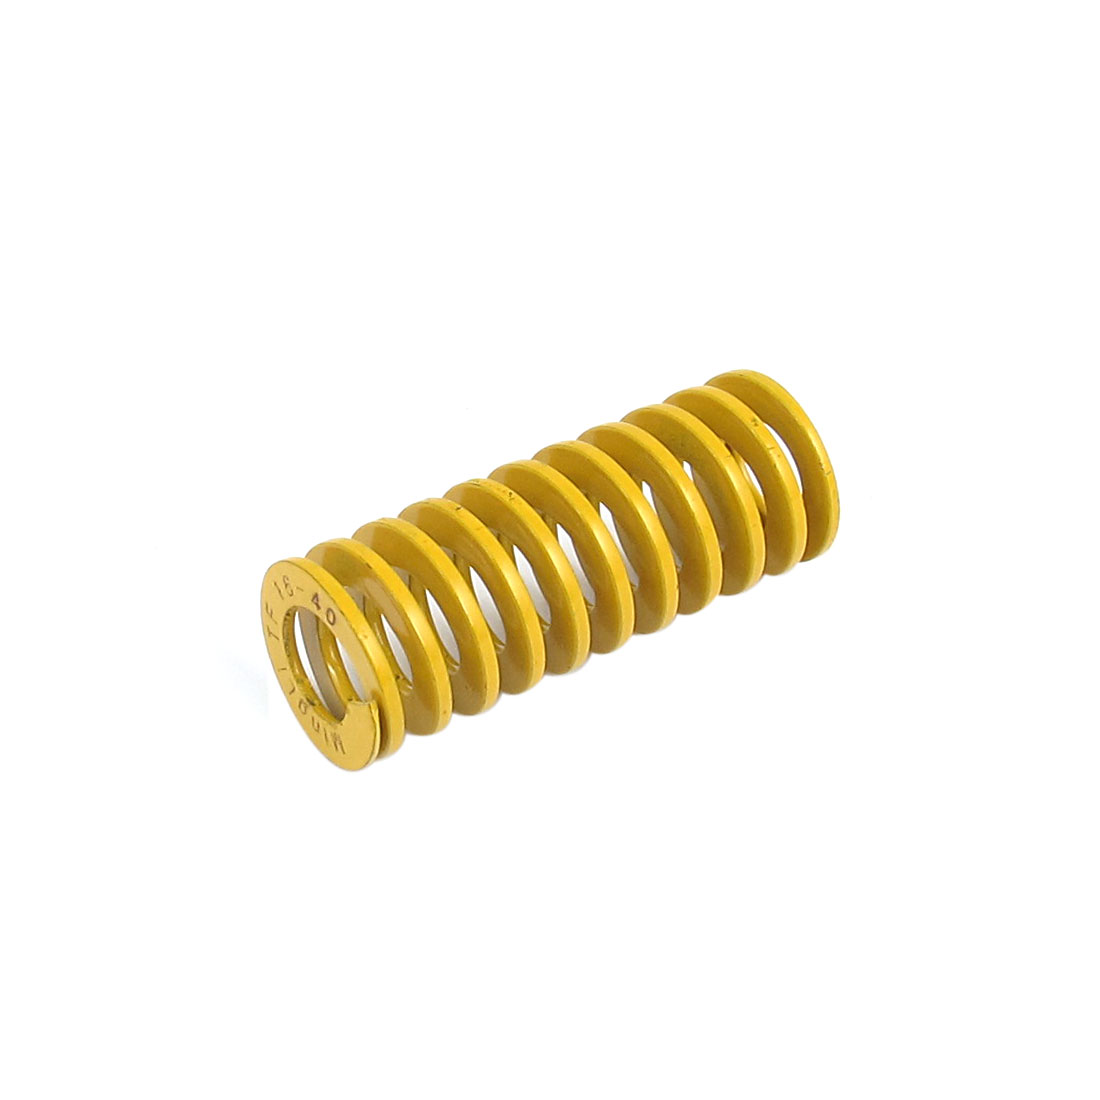 16mmx40mm Chromium Alloy Steel Lightest Load Die Spring Yellow